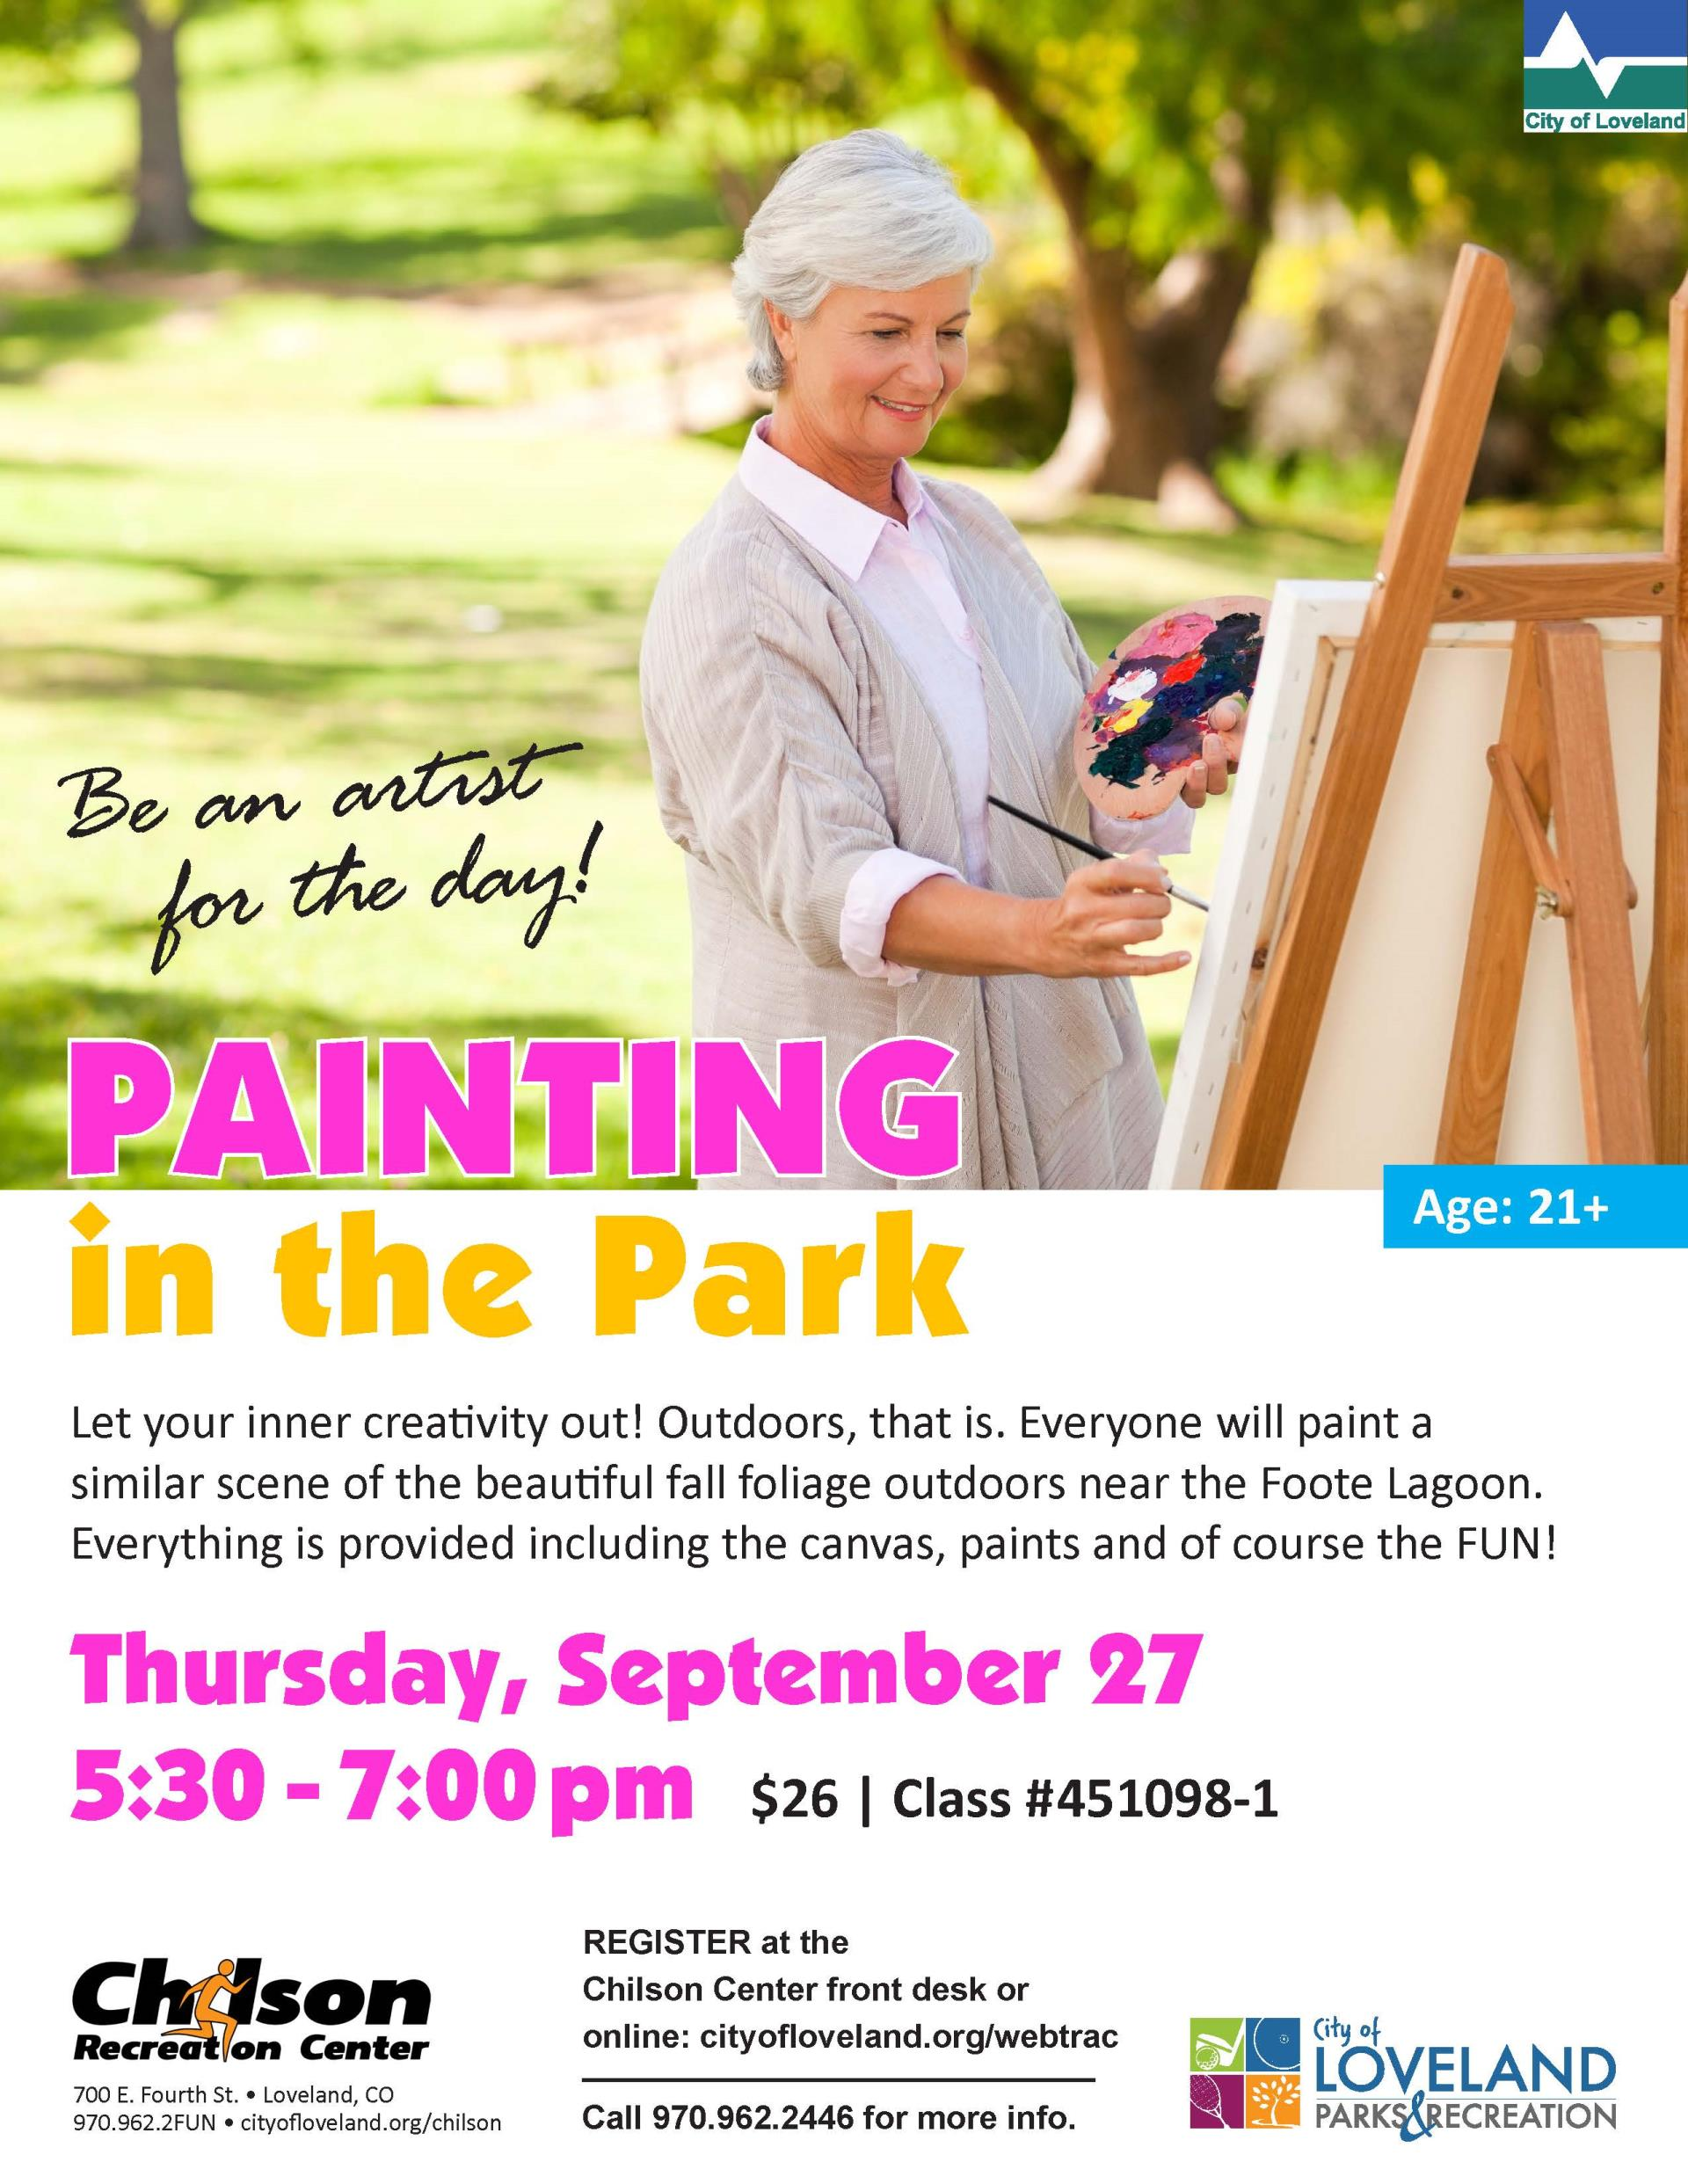 Painting in the Park at Foote Lagoon